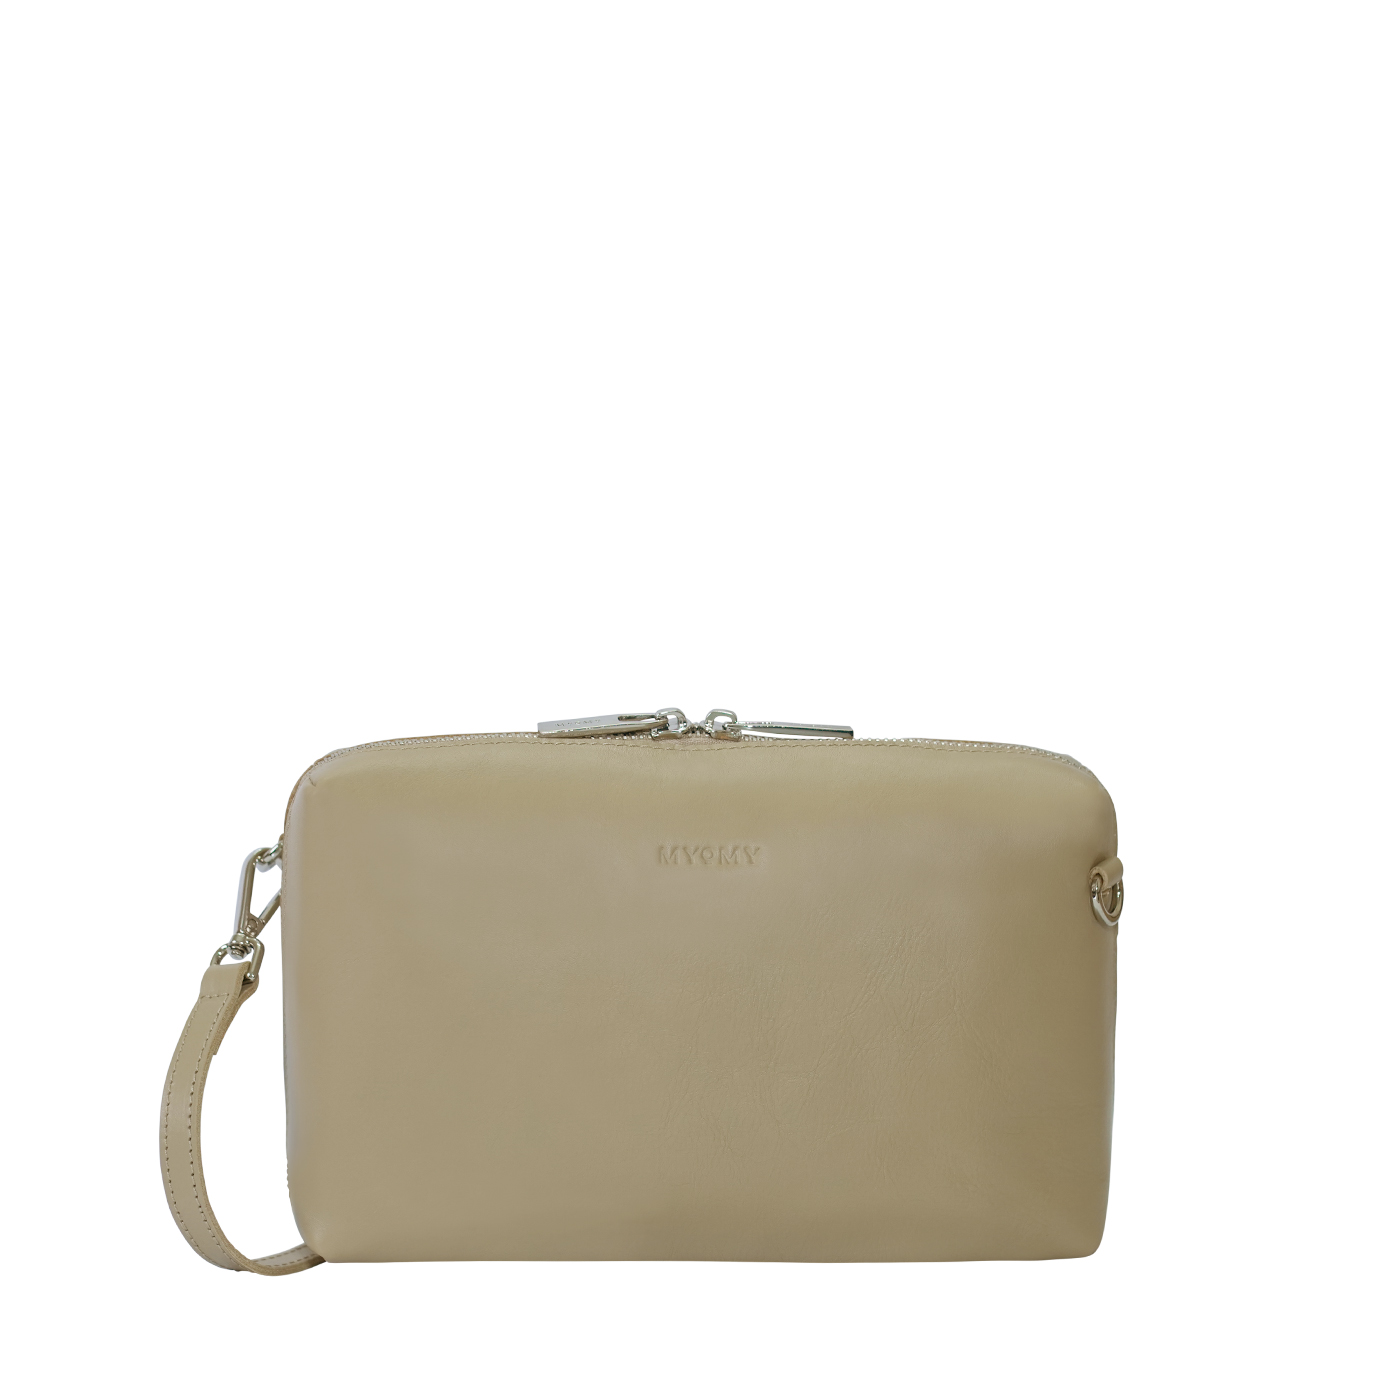 MY BOXY BAG Handbag - sand